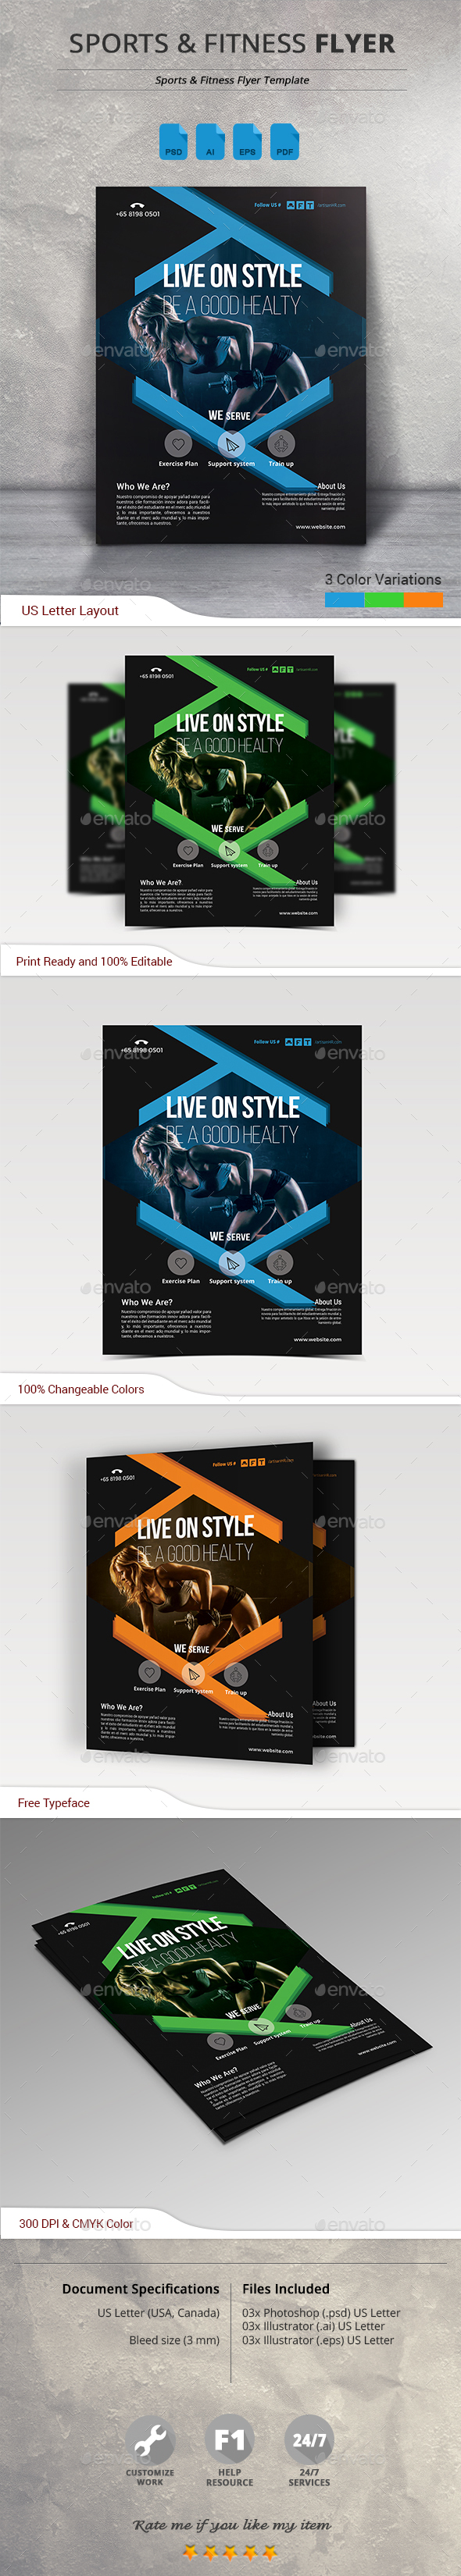 Sports  Fitness Flyer Template Psd Ai  Flyer Templates